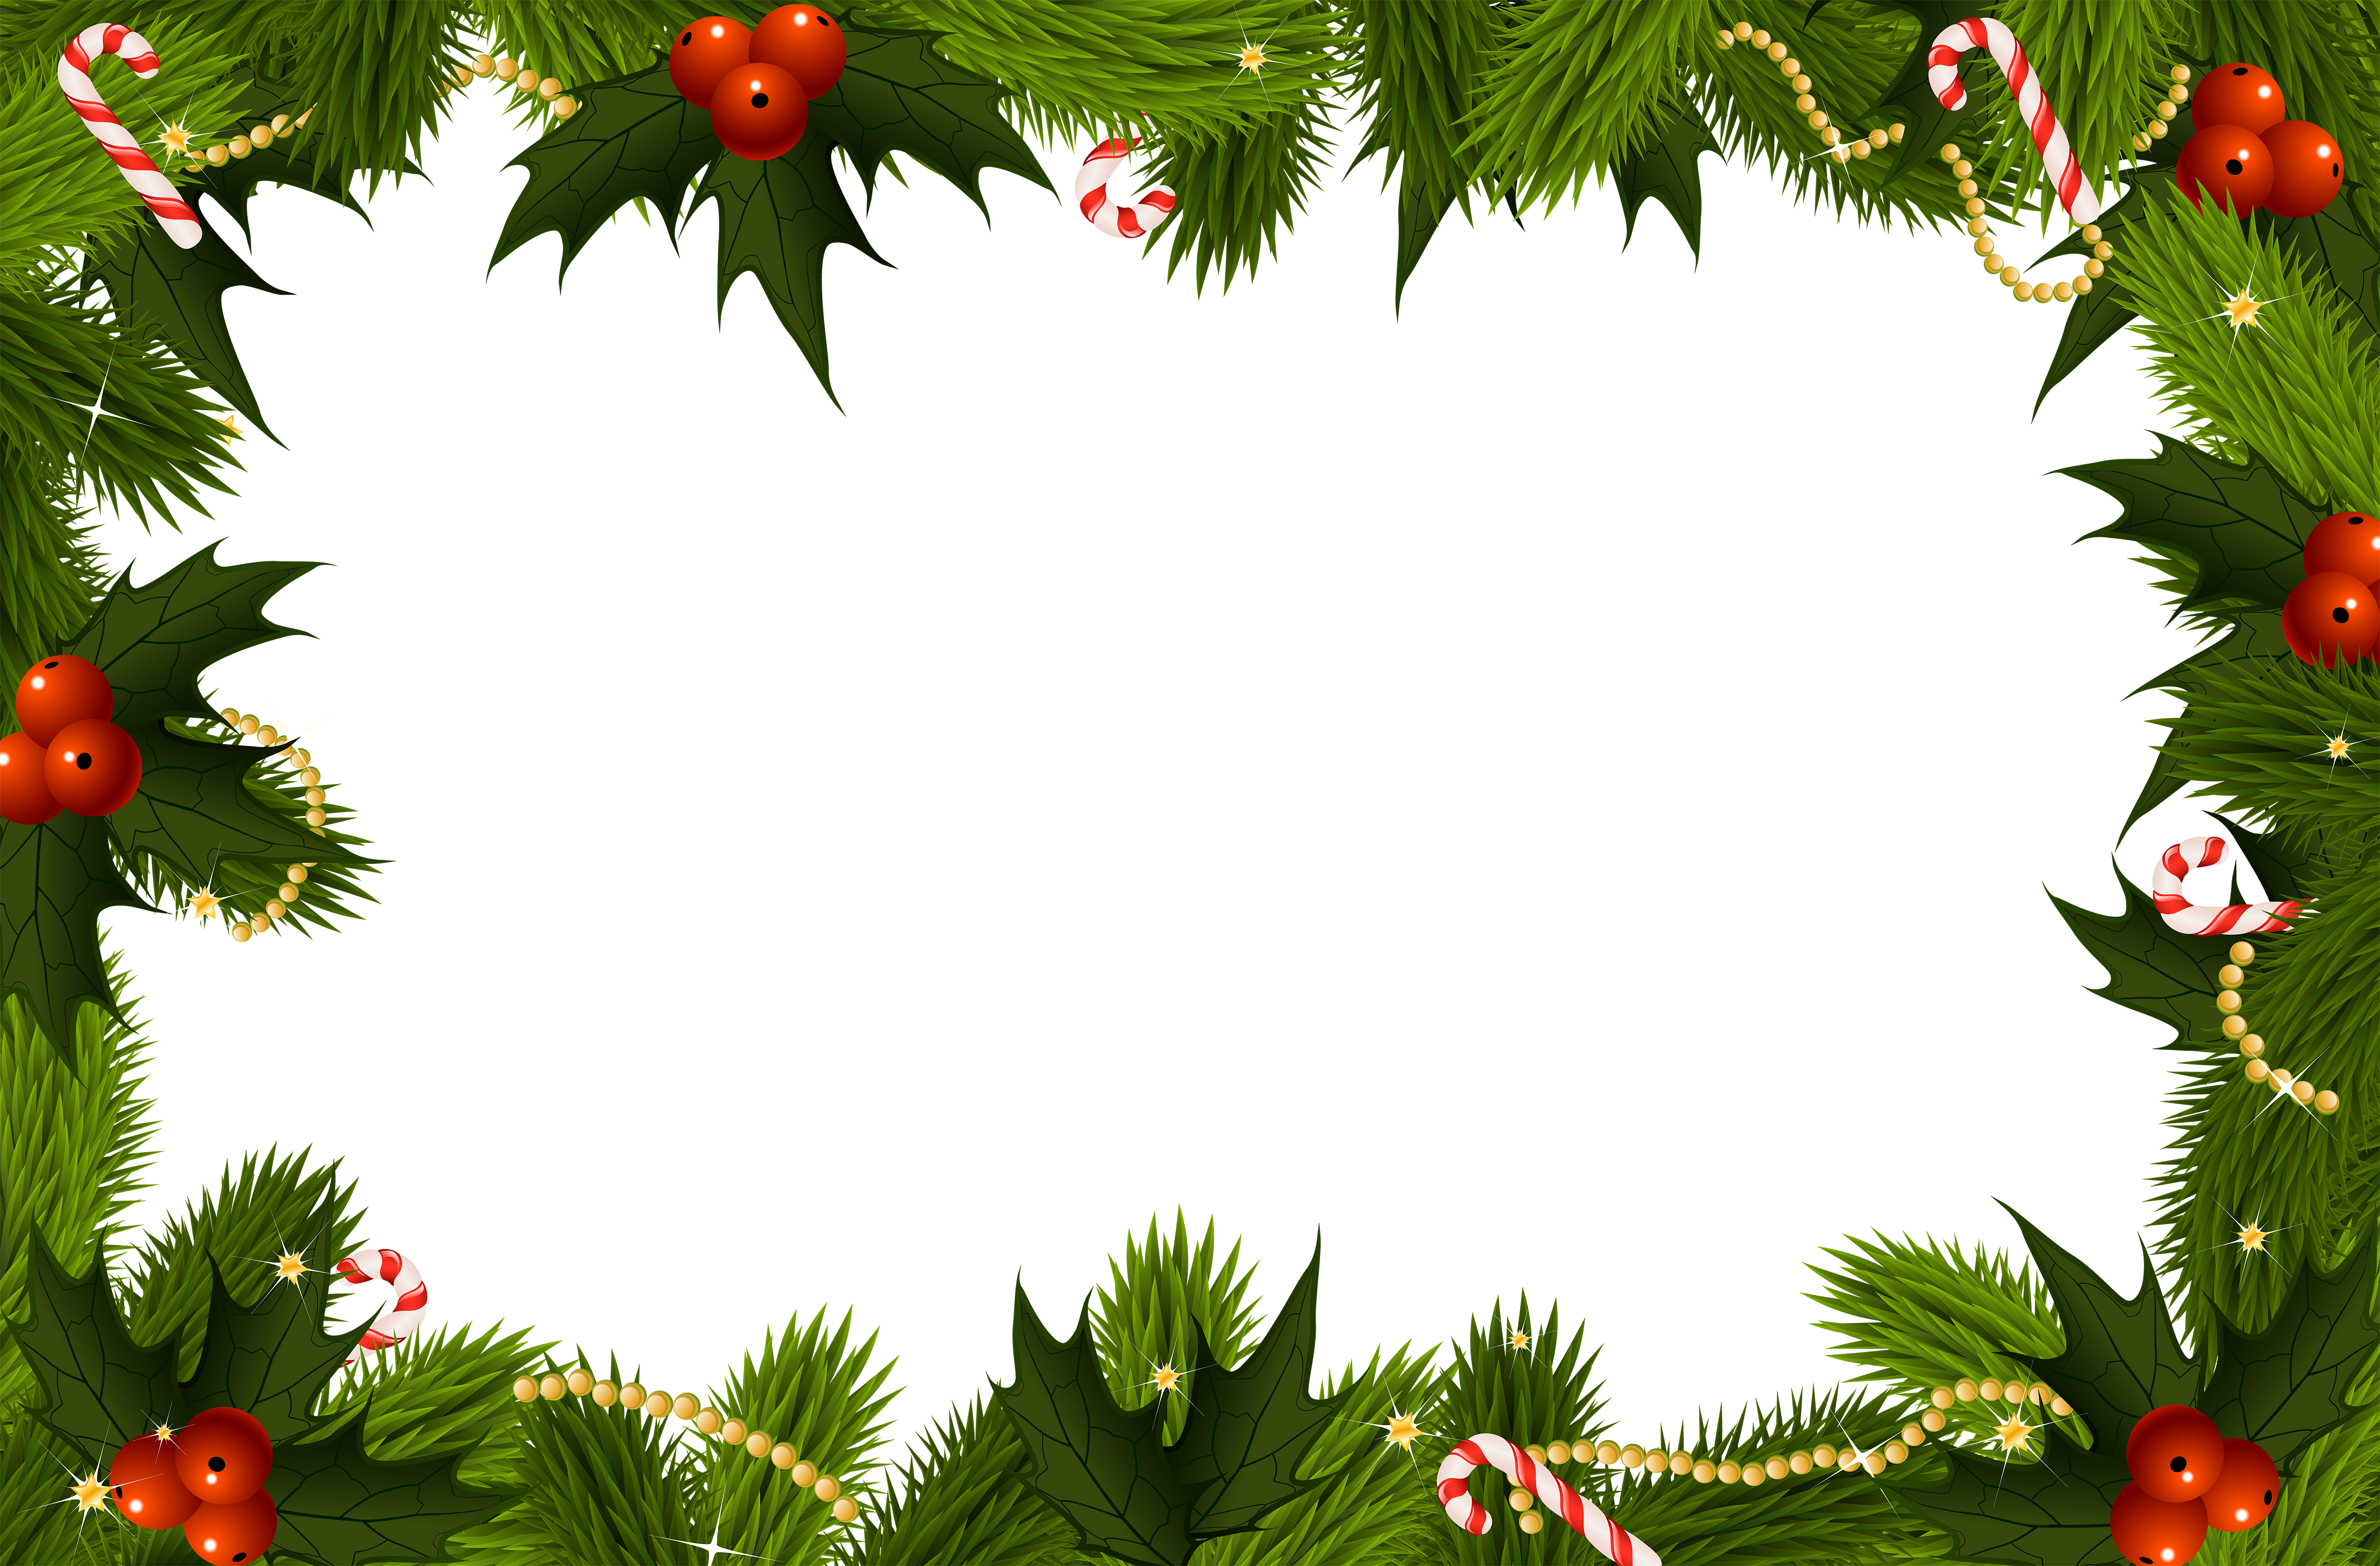 Holiday border png. Christmas transparent frame gallery